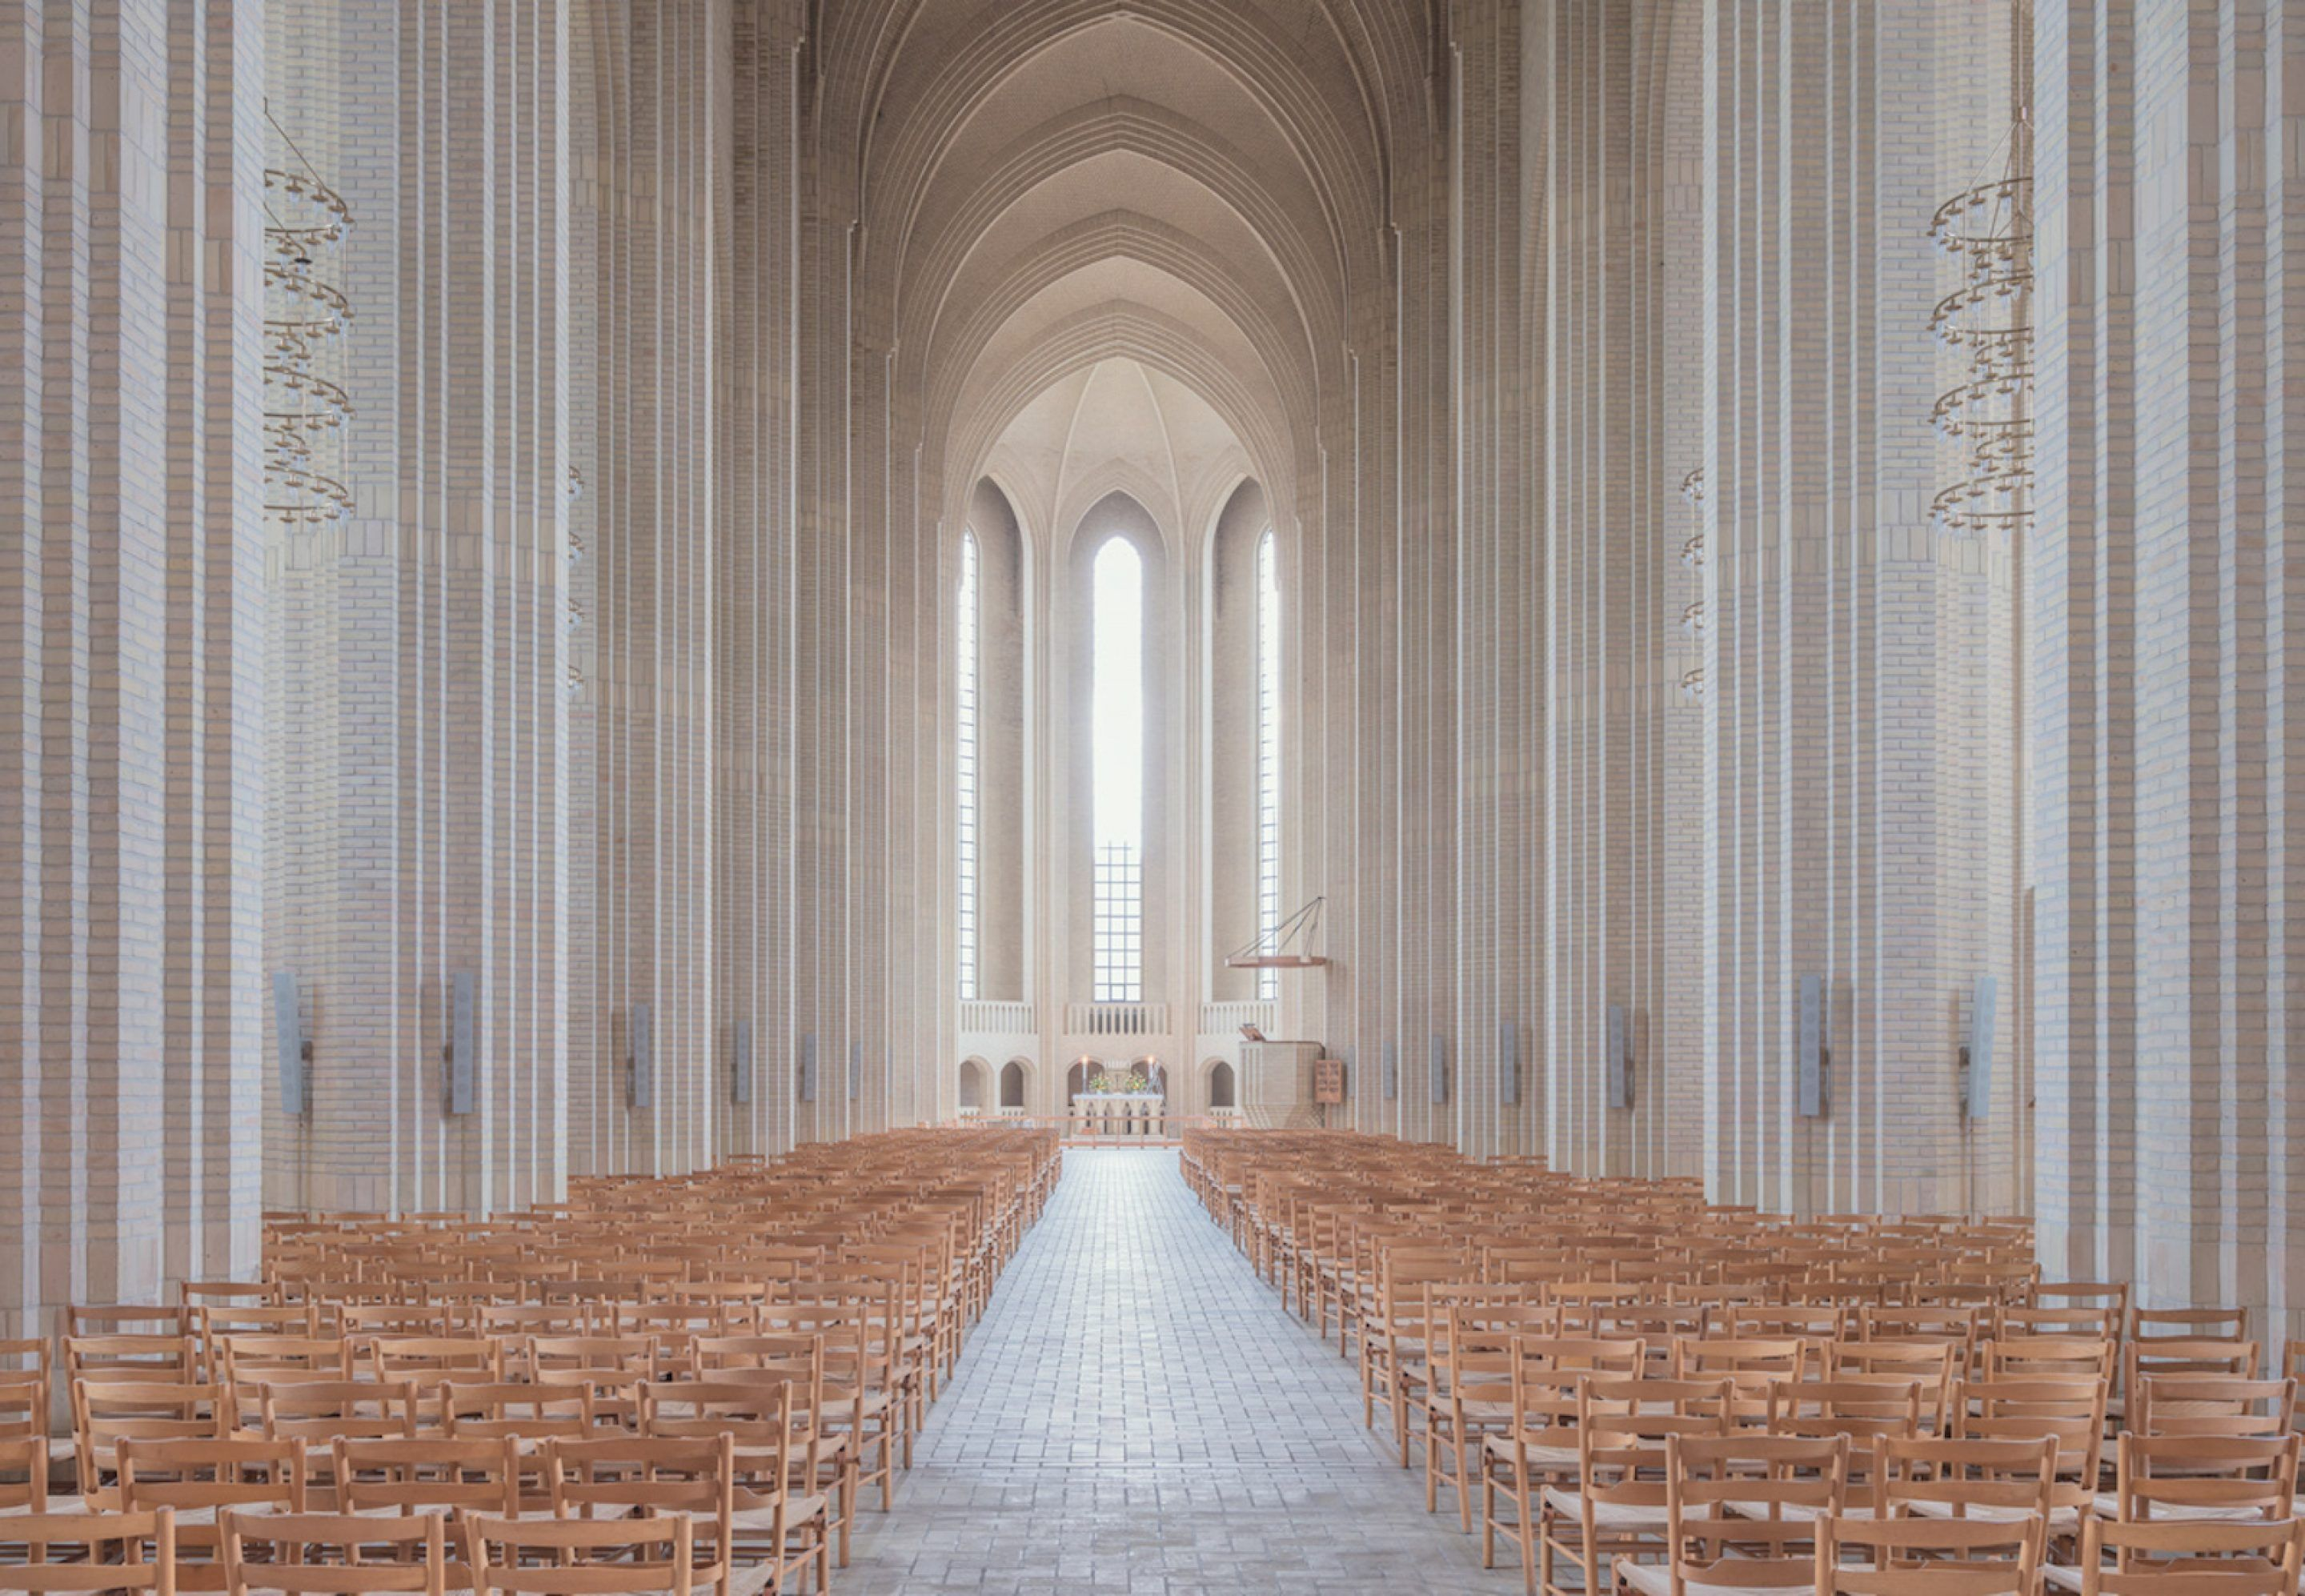 IGNANT-Photography-Ludwig-Favre-Copenhagen-Church-02